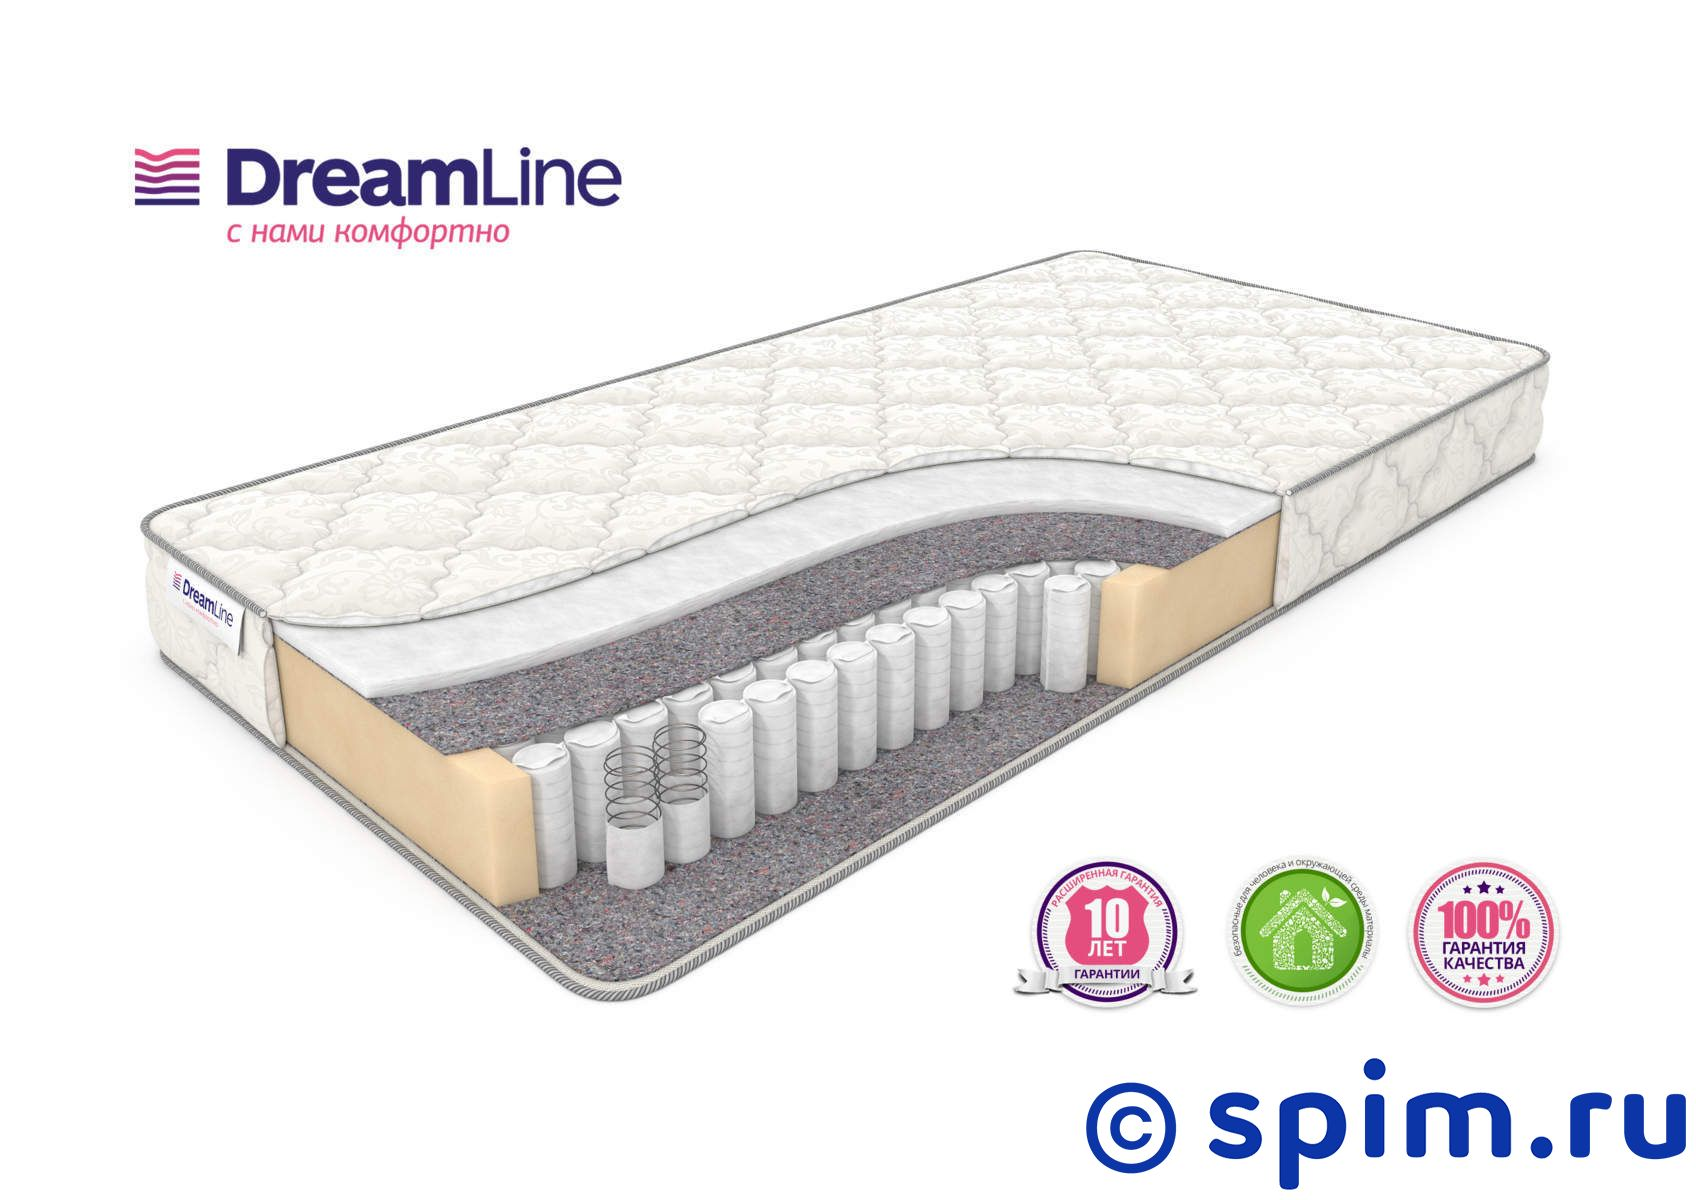 Матрас DreamLine Single Hol Tfk 120х195 см матрас dreamline dreamroll contour mix 180х200